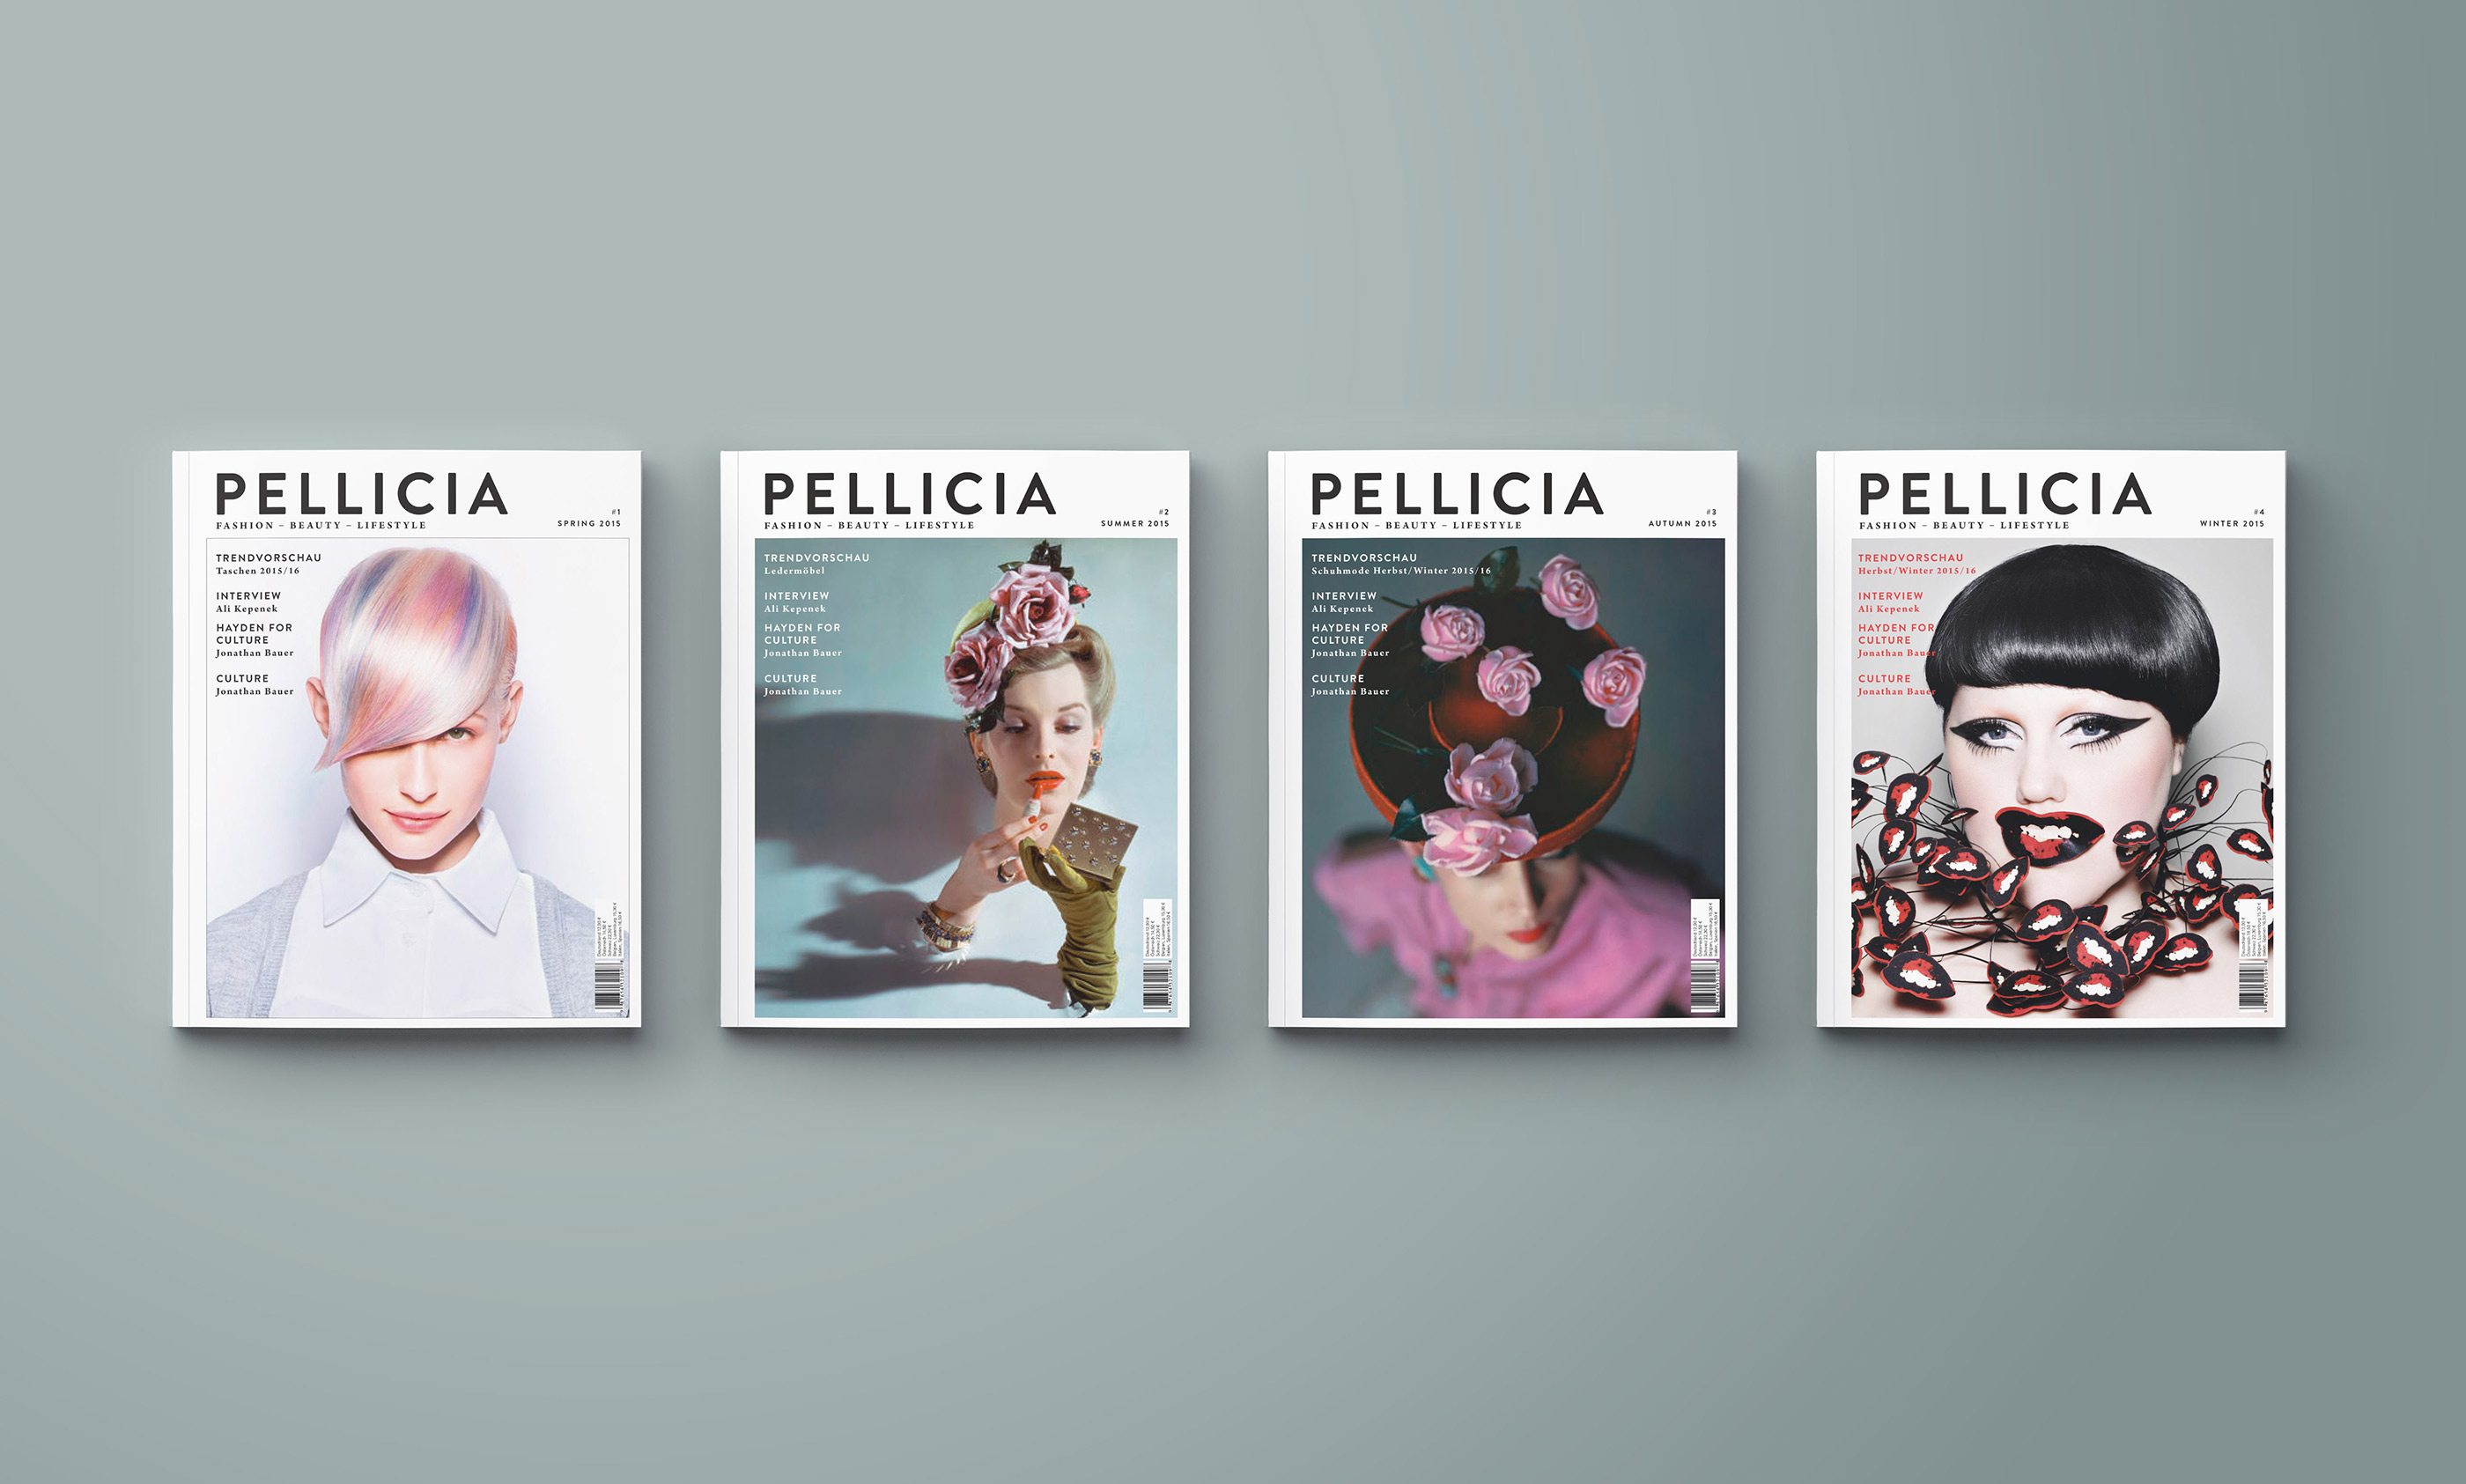 Editorial Design, PELLICIA, Magazin, Studienarbeit